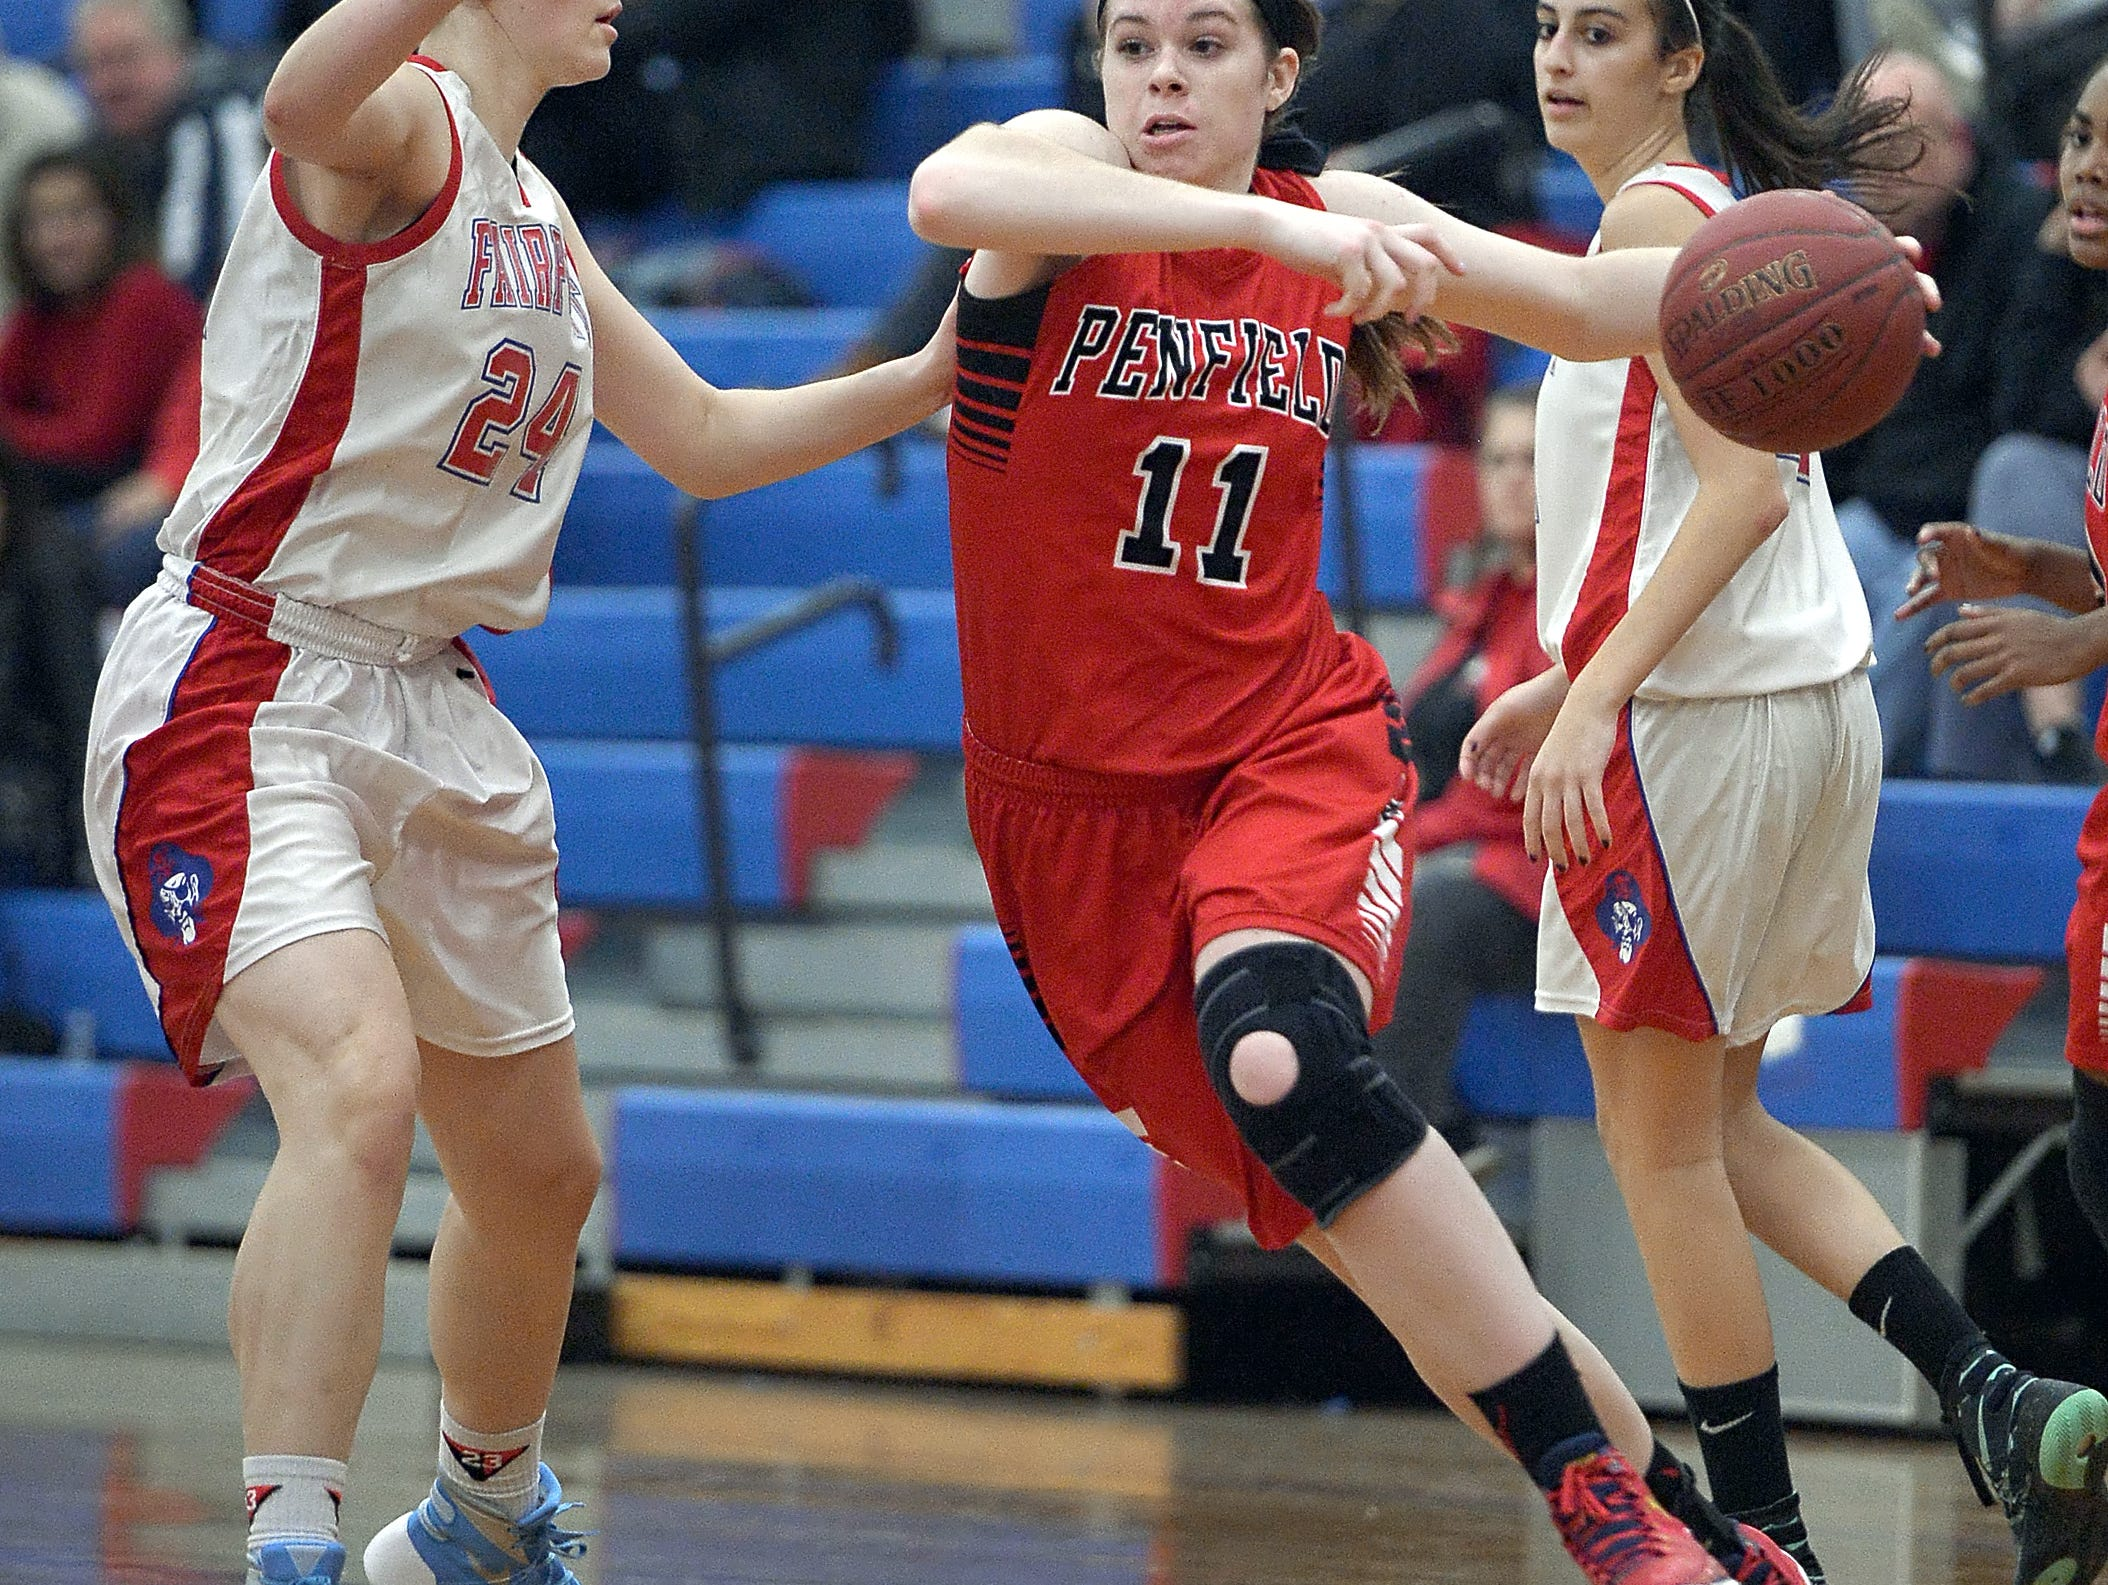 Penfield's Emma Guy, right, drives the baseline against Fairport's Hannah Ribble. Guy has committed to Boston College.